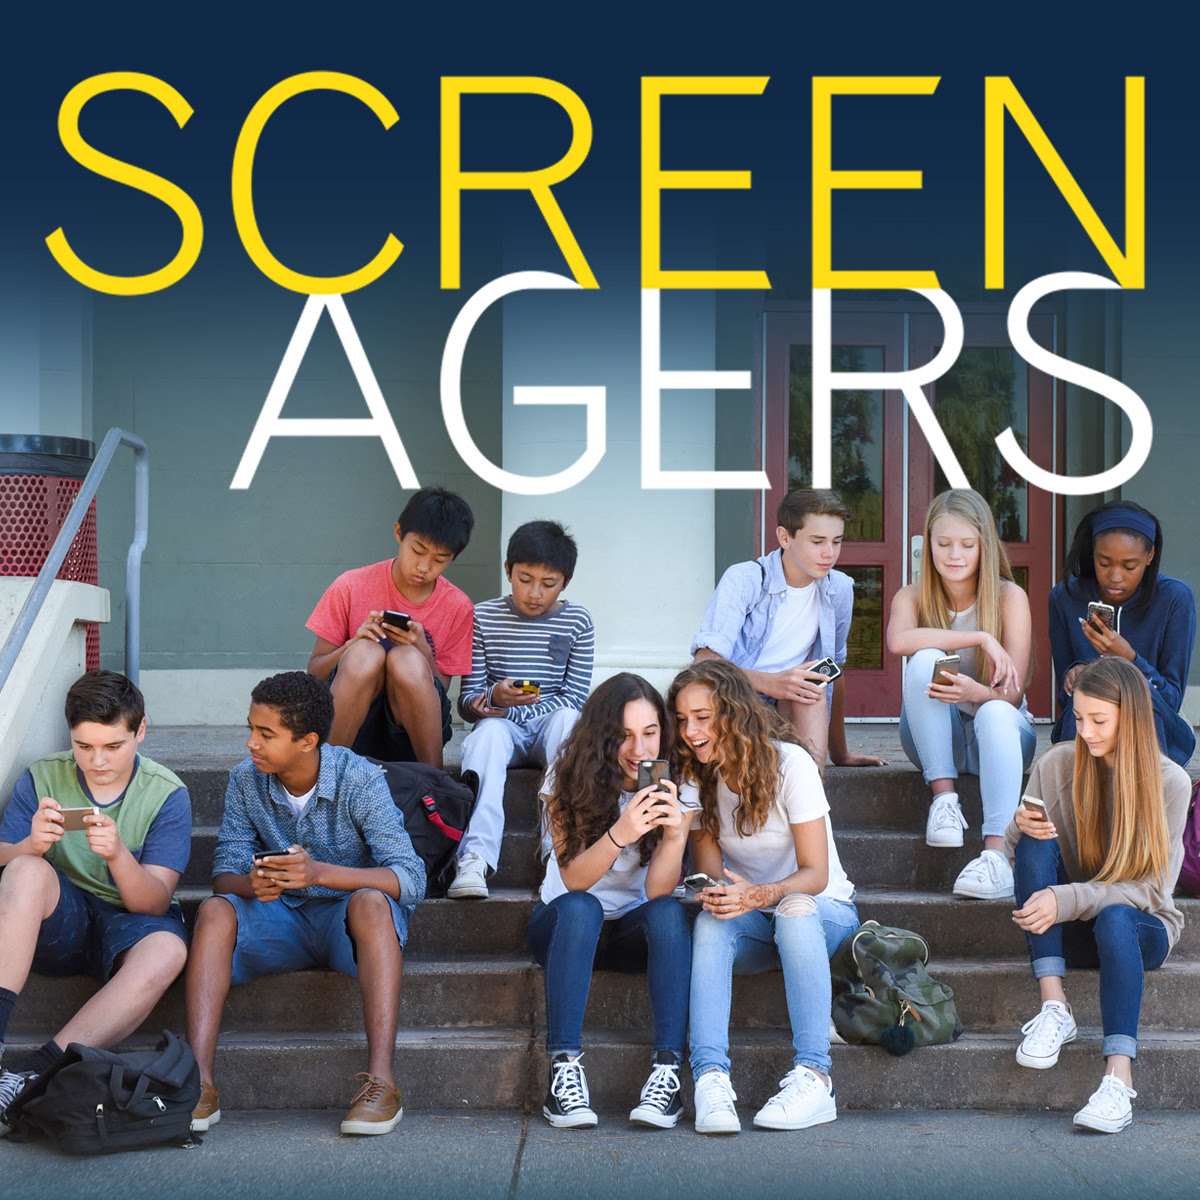 Screenagers Film Presented By Montessori School of Raleigh